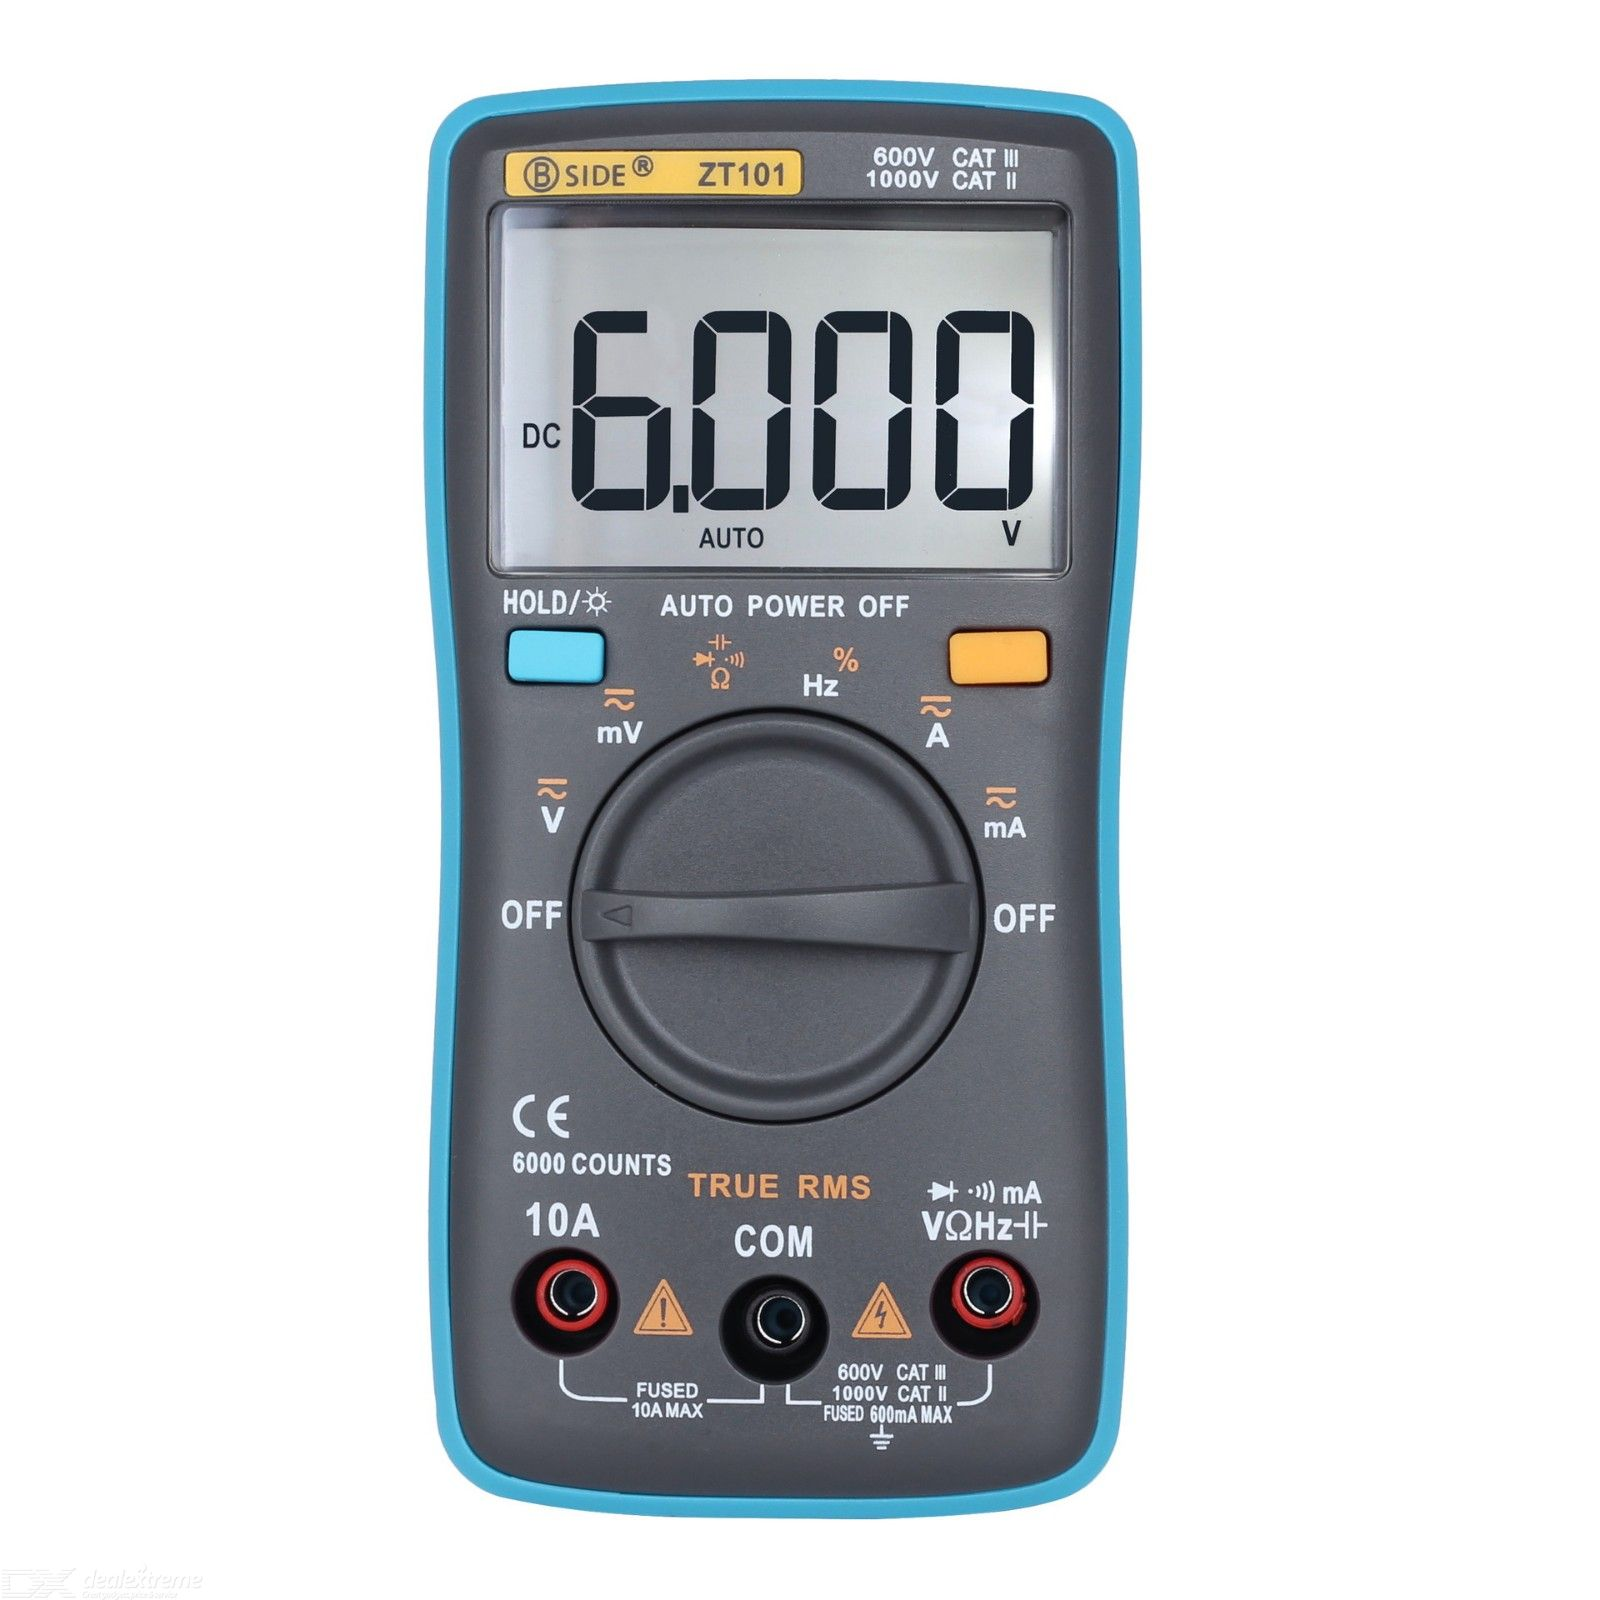 BSIDE  ZT101 Ture RMS Auto Digital Multimeter 6000 Counts Backlight AC/DC Current Voltage Ohm Tester Portable LCD Screen Meter